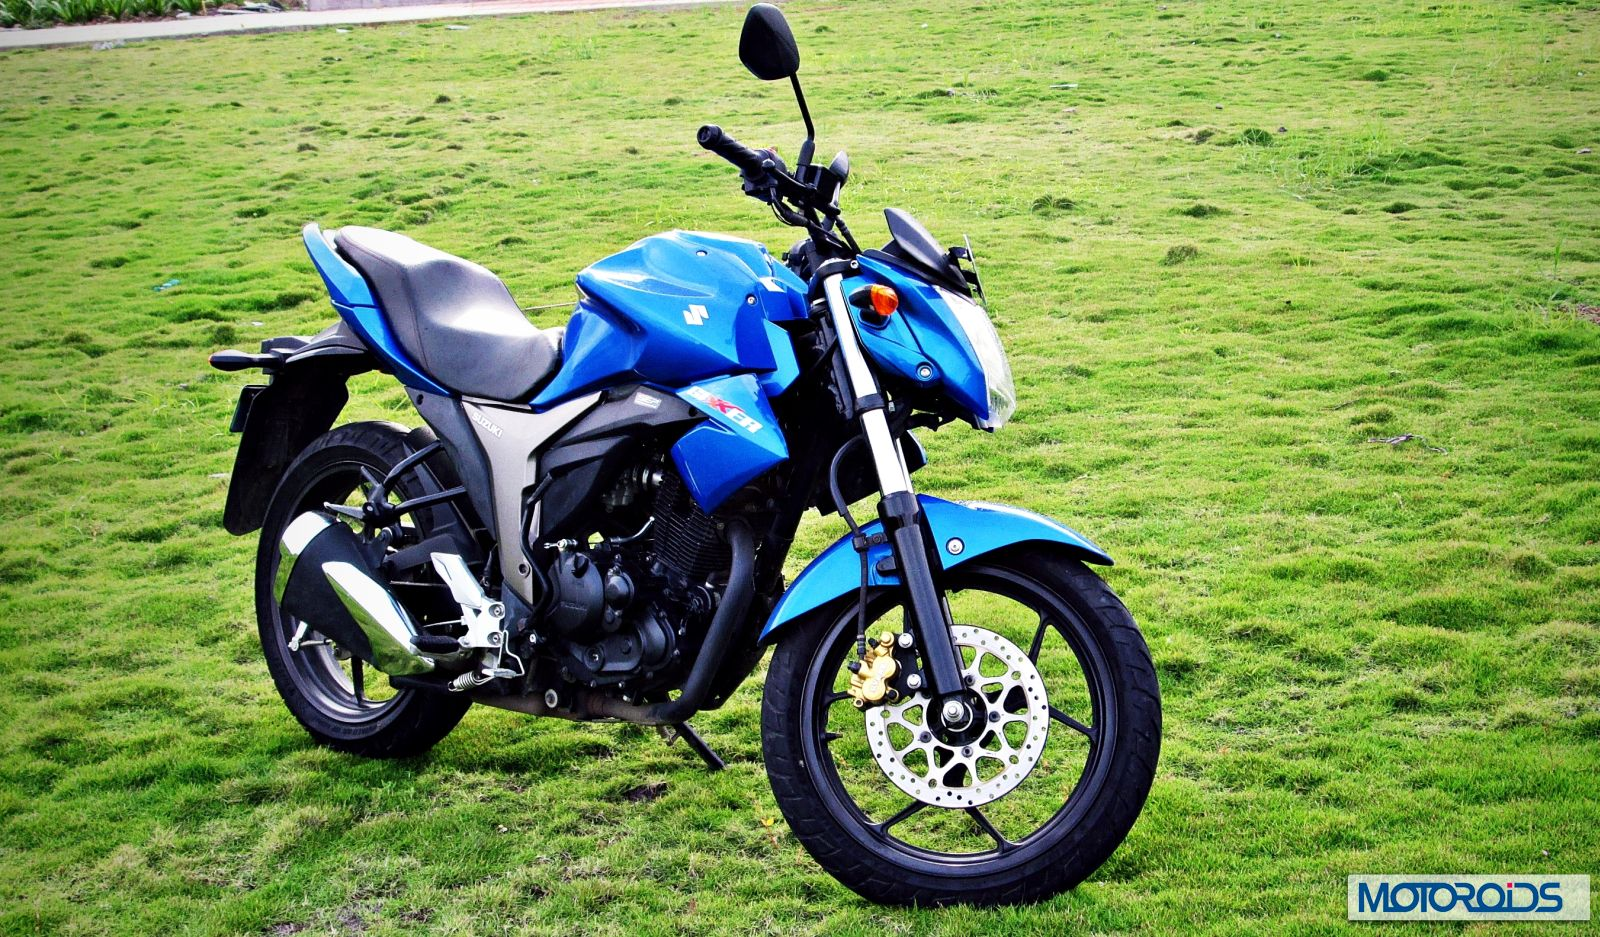 Over 10 000 Units Of Suzuki Gixxer Sold In October 2015 Overall Sales Rise By 15 Motoroids